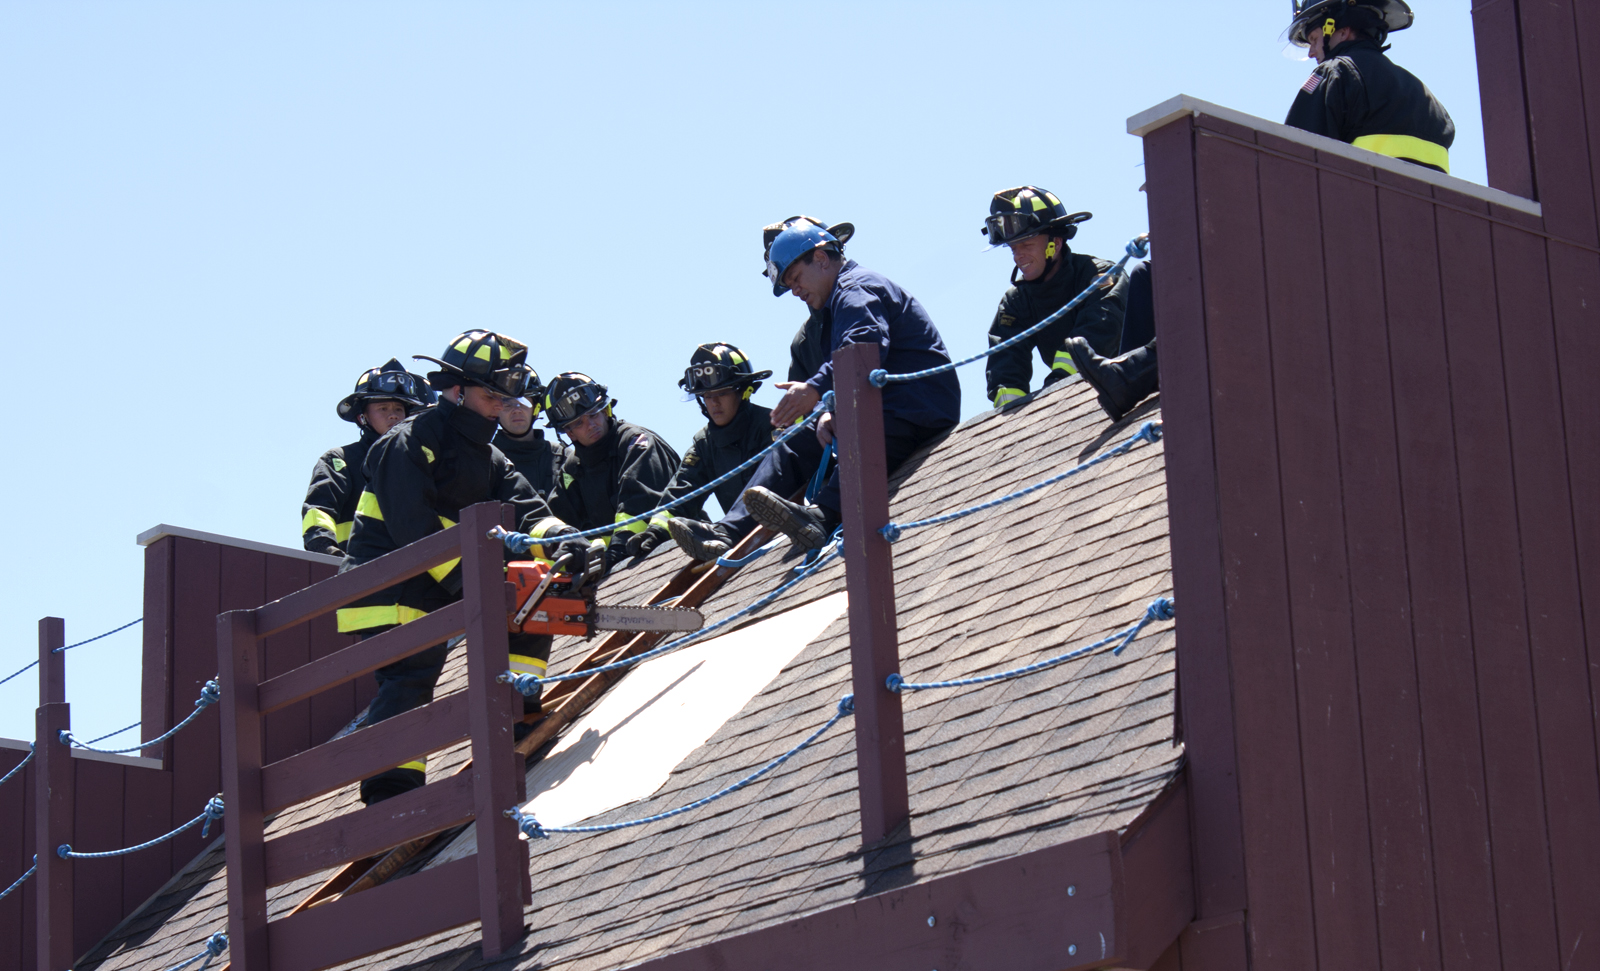 Training Day at the Firehouse